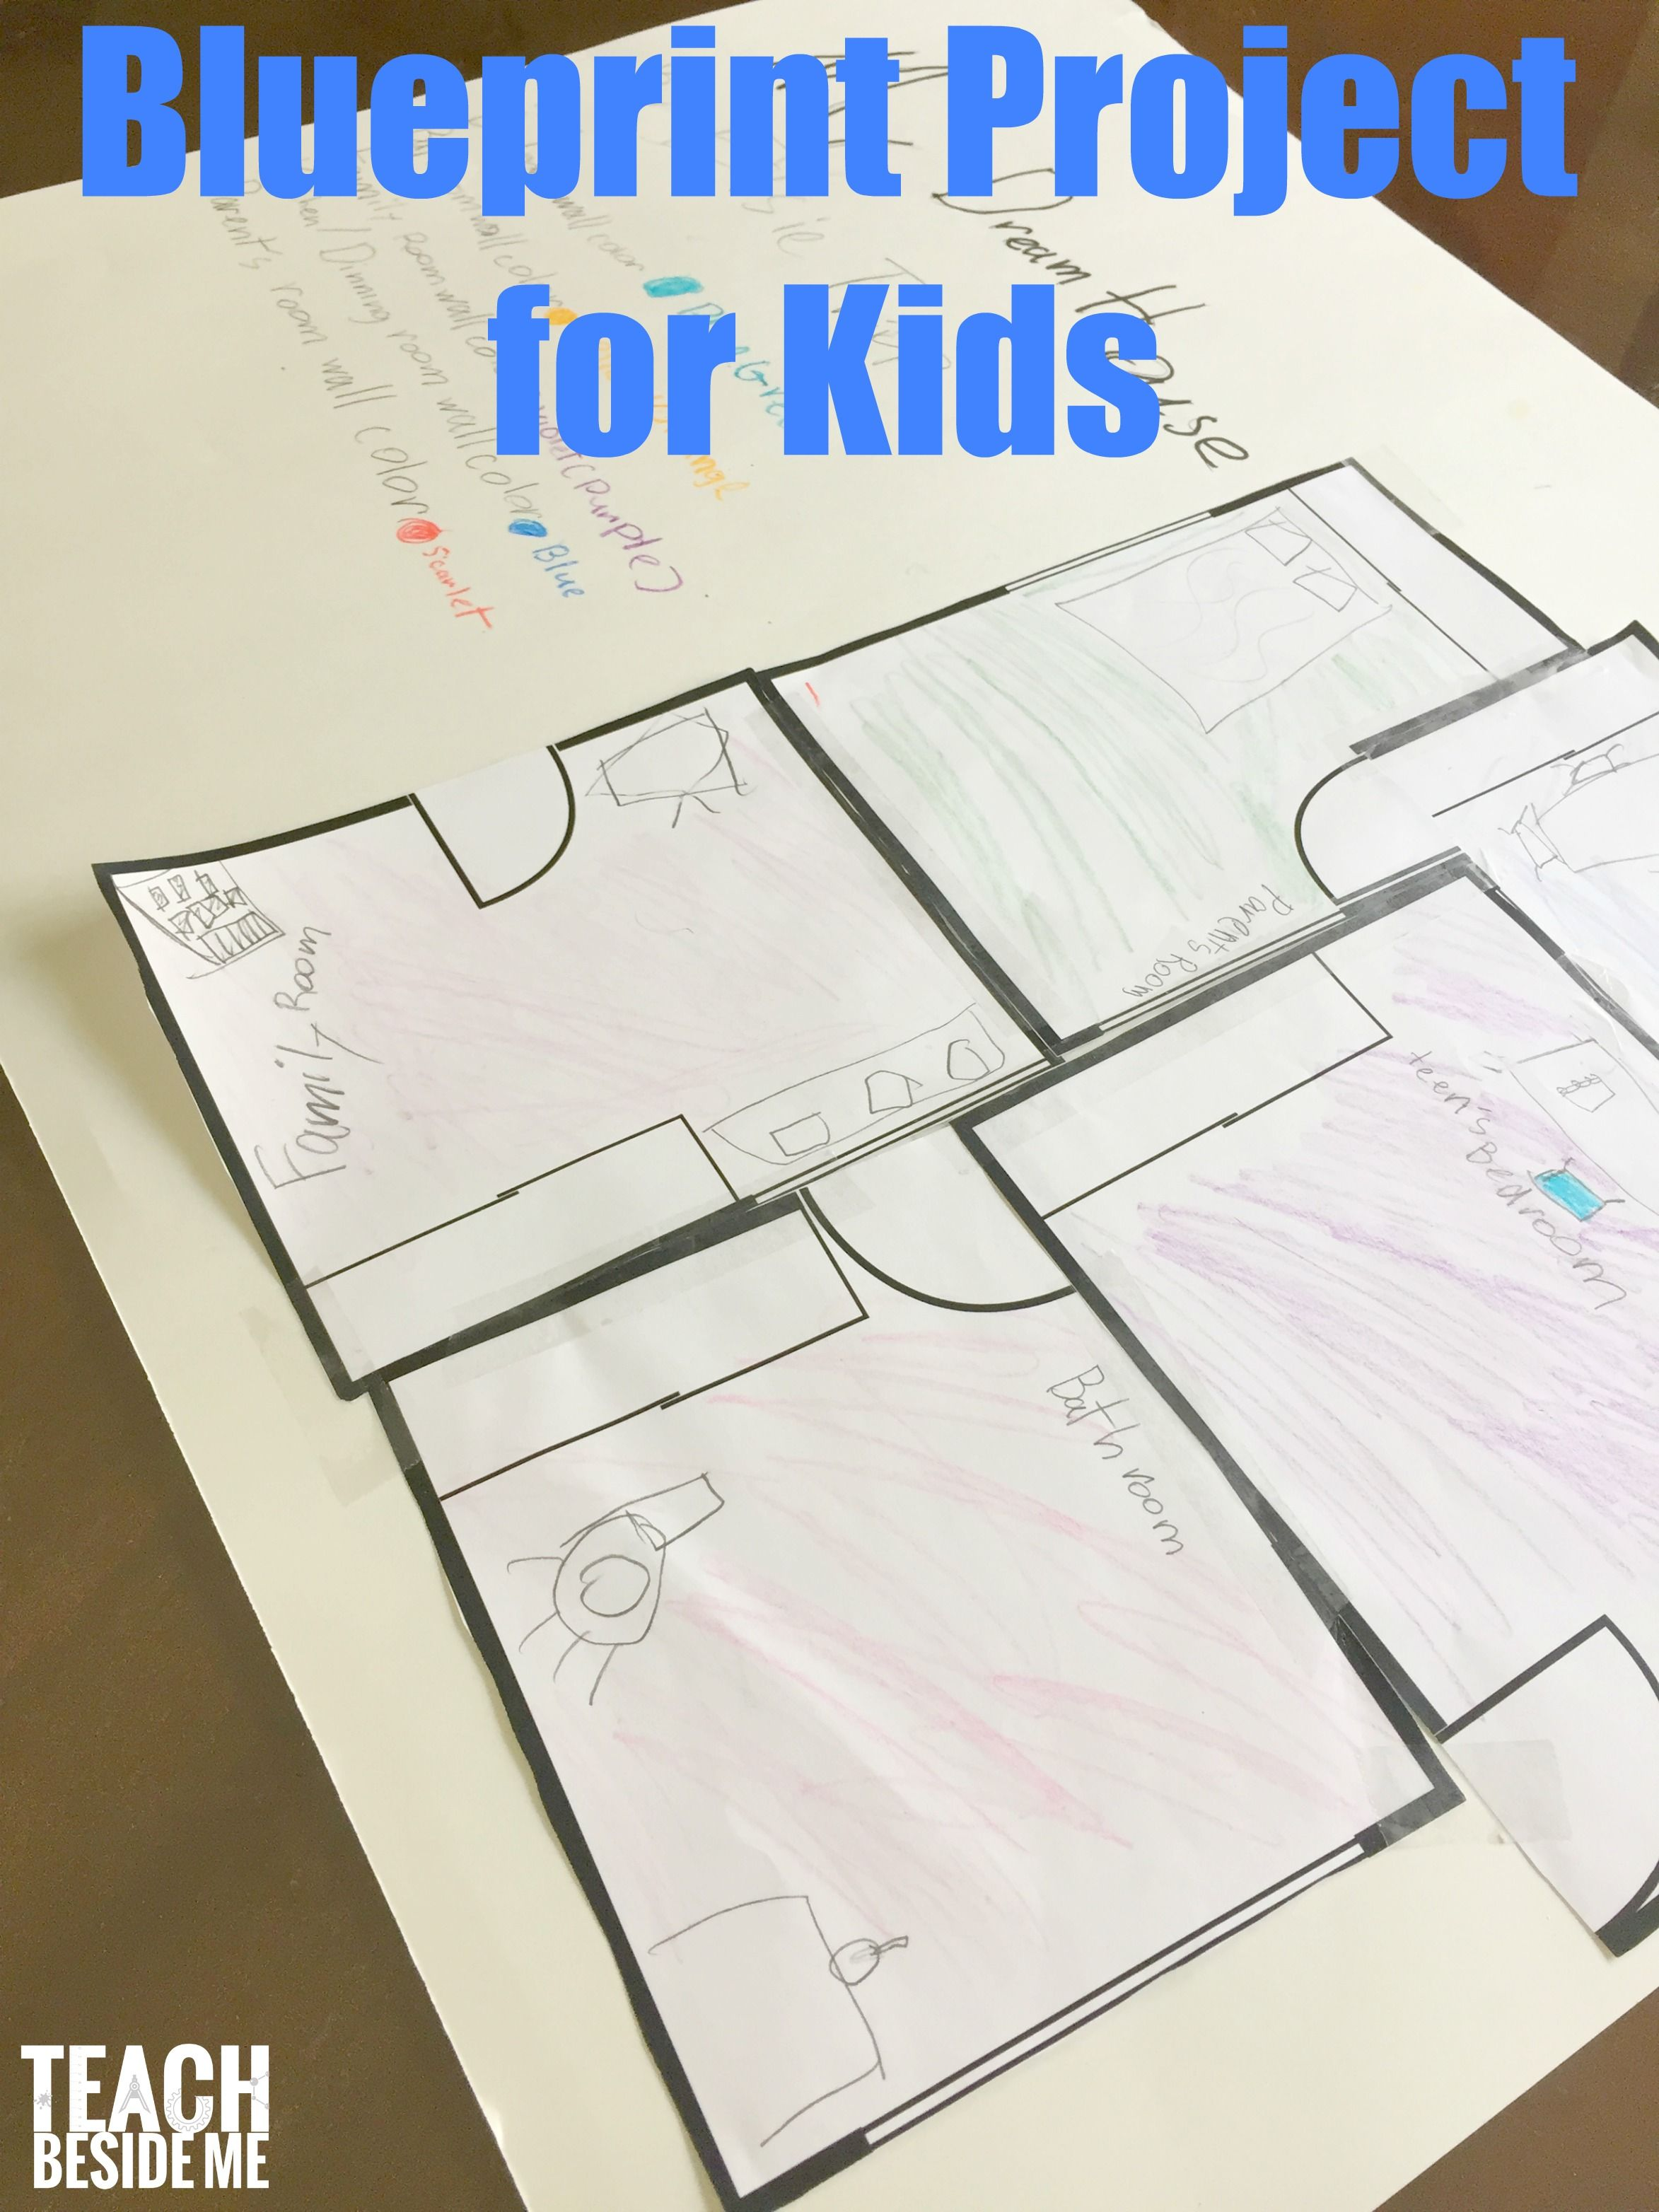 Blueprints And Architecture For Kids Inspired By Frank